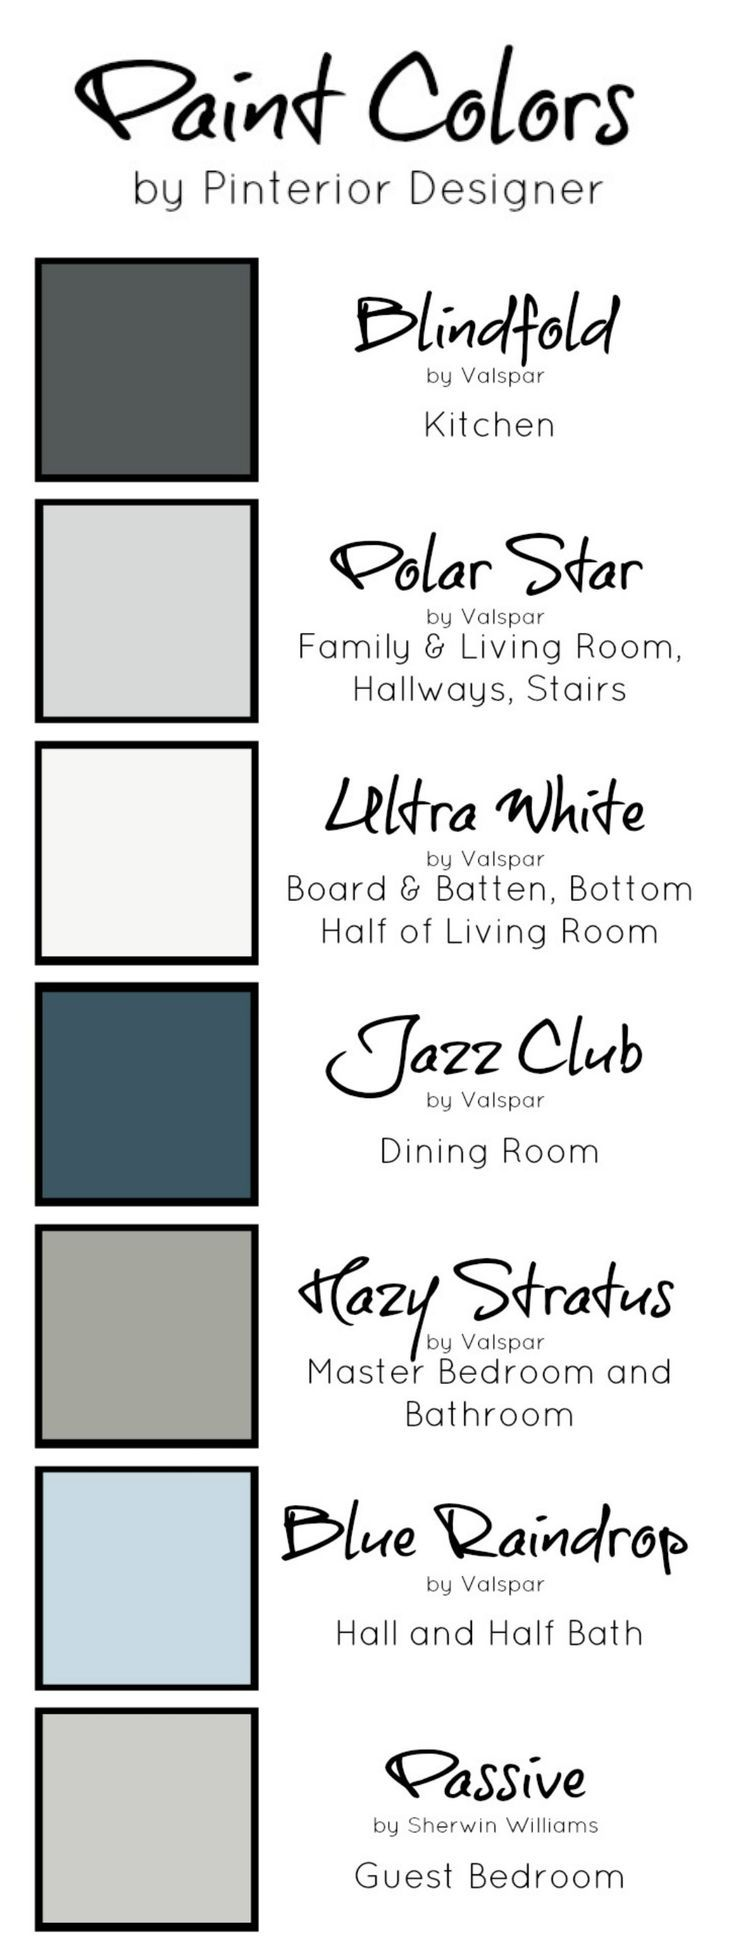 coastalcolorsstagingthatsells Paint colors 2 Pinterest